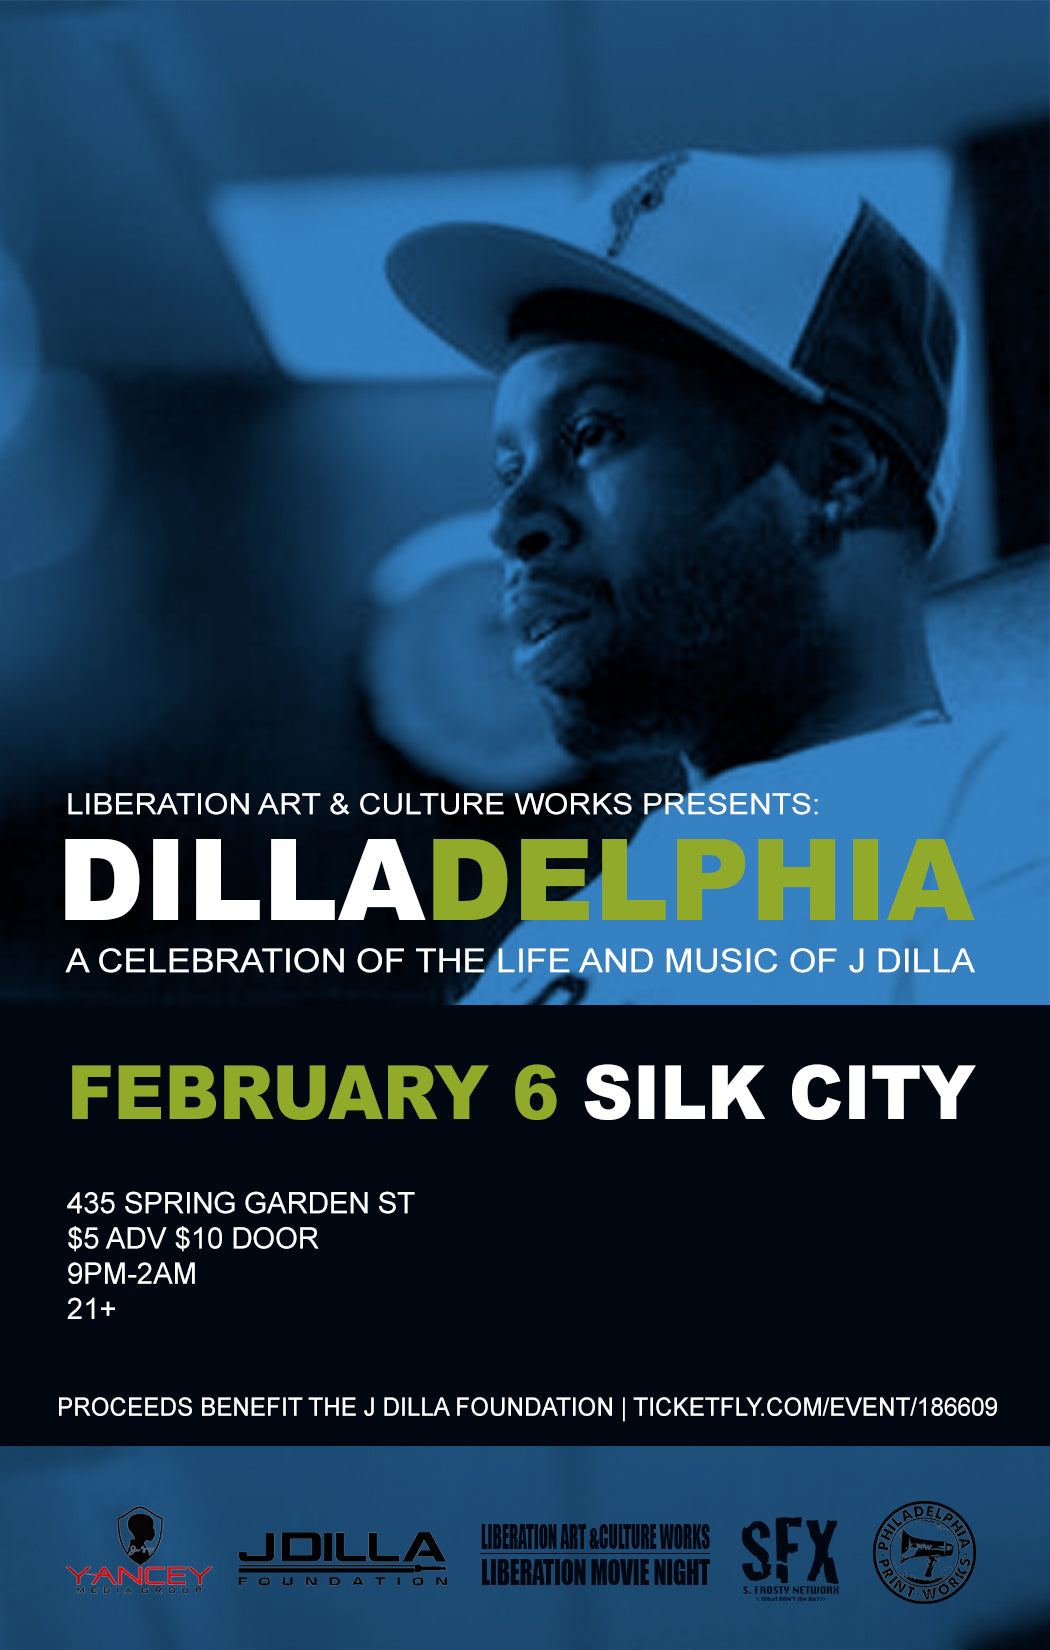 DILLADELPHIA: A CELEBRATION OF THE LIFE & MUSIC OF J DILLA